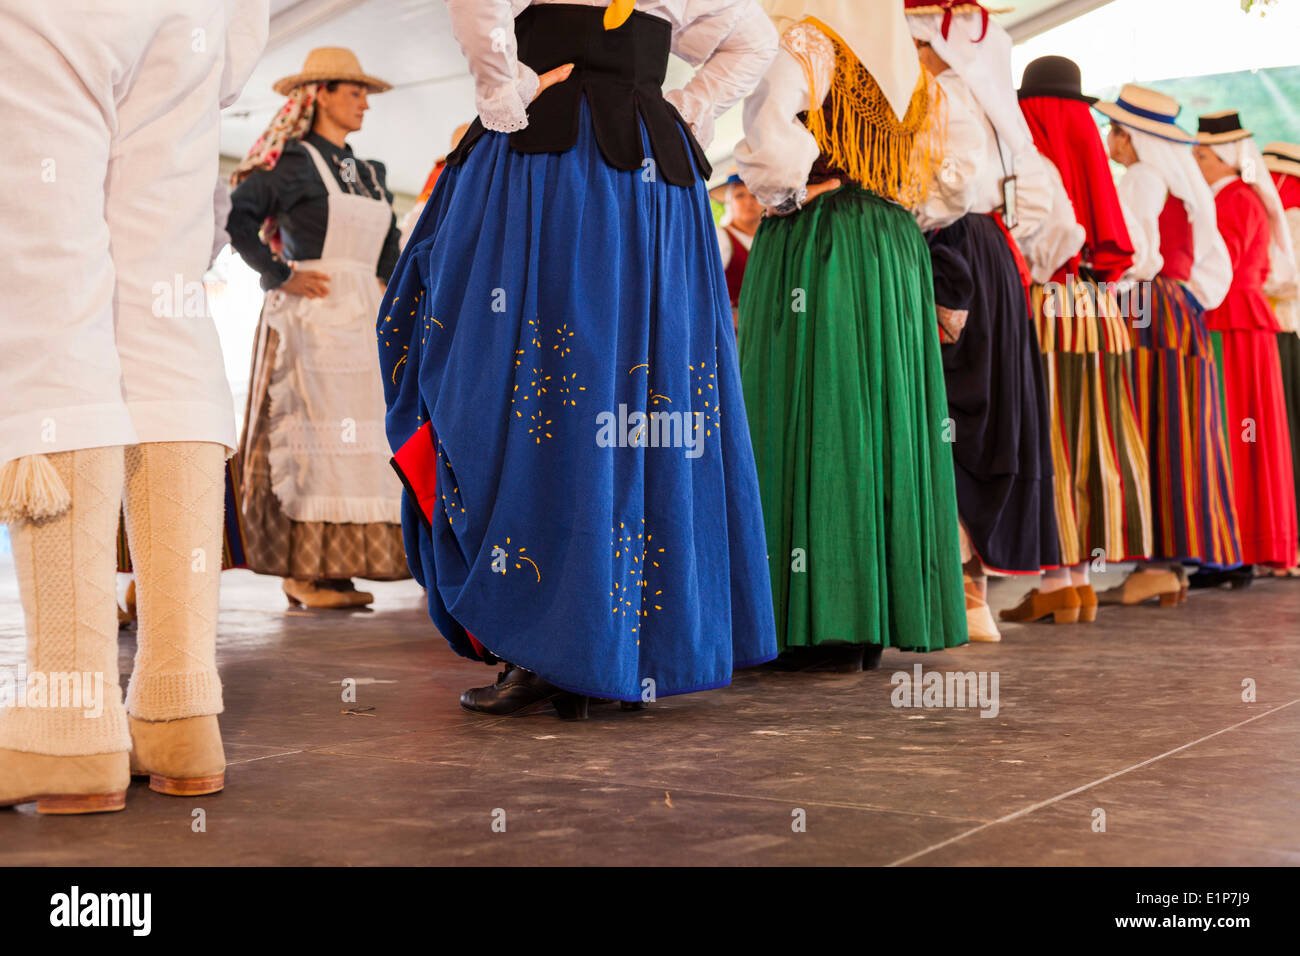 Canarian people celebrate their national day dressed in traditional costumes and dancing in the plaza in Alcala, Tenerife, - Stock Image